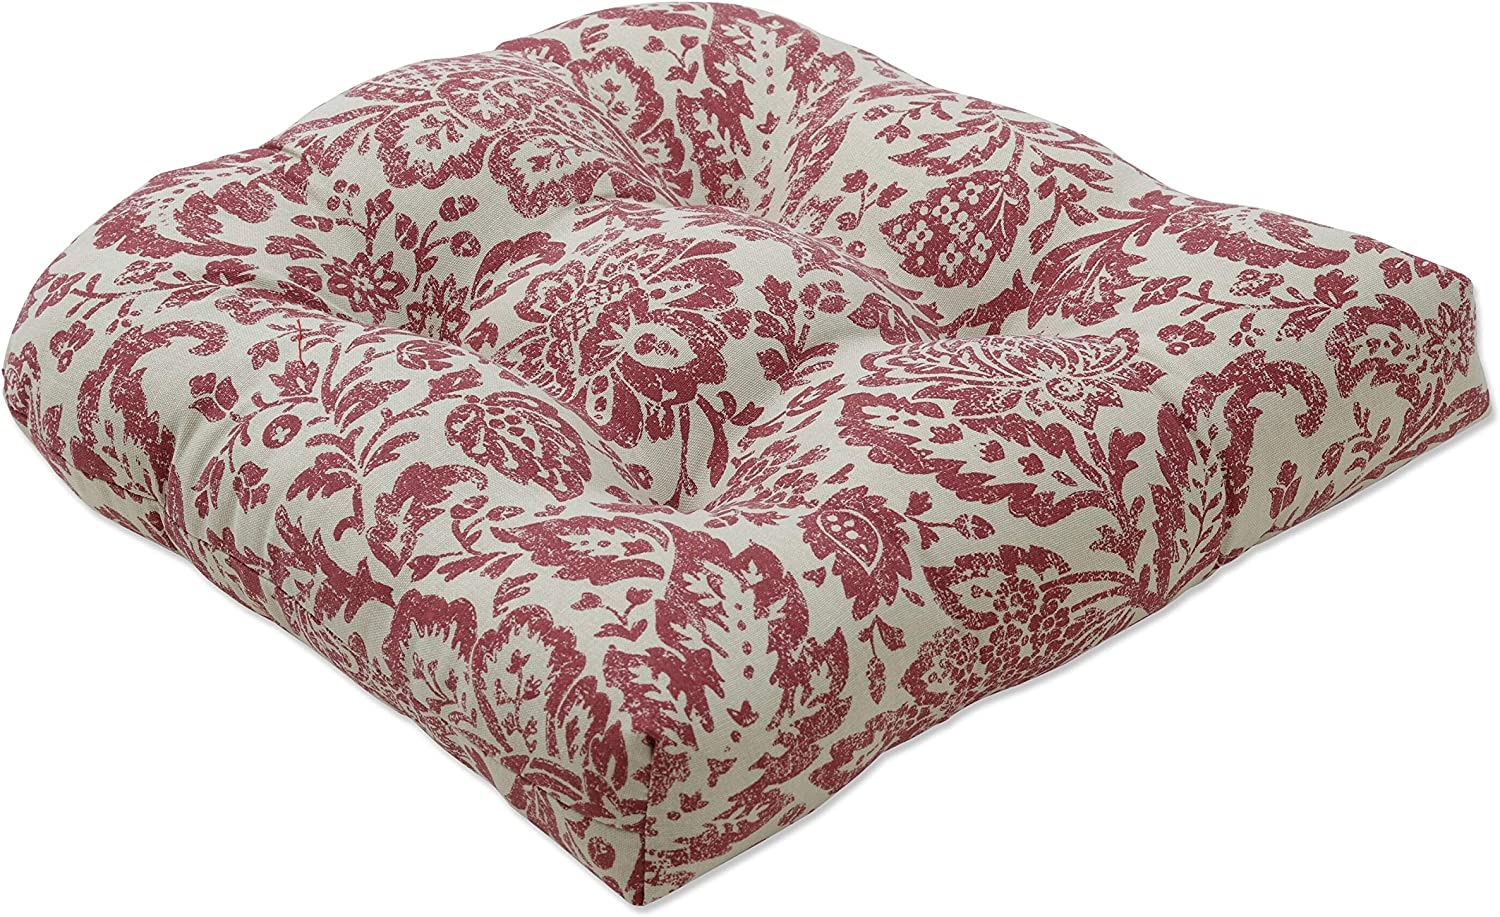 Pillow Under blast sales Perfect Indoor Fairhaven Discount mail order Red Cushion Chair x 19